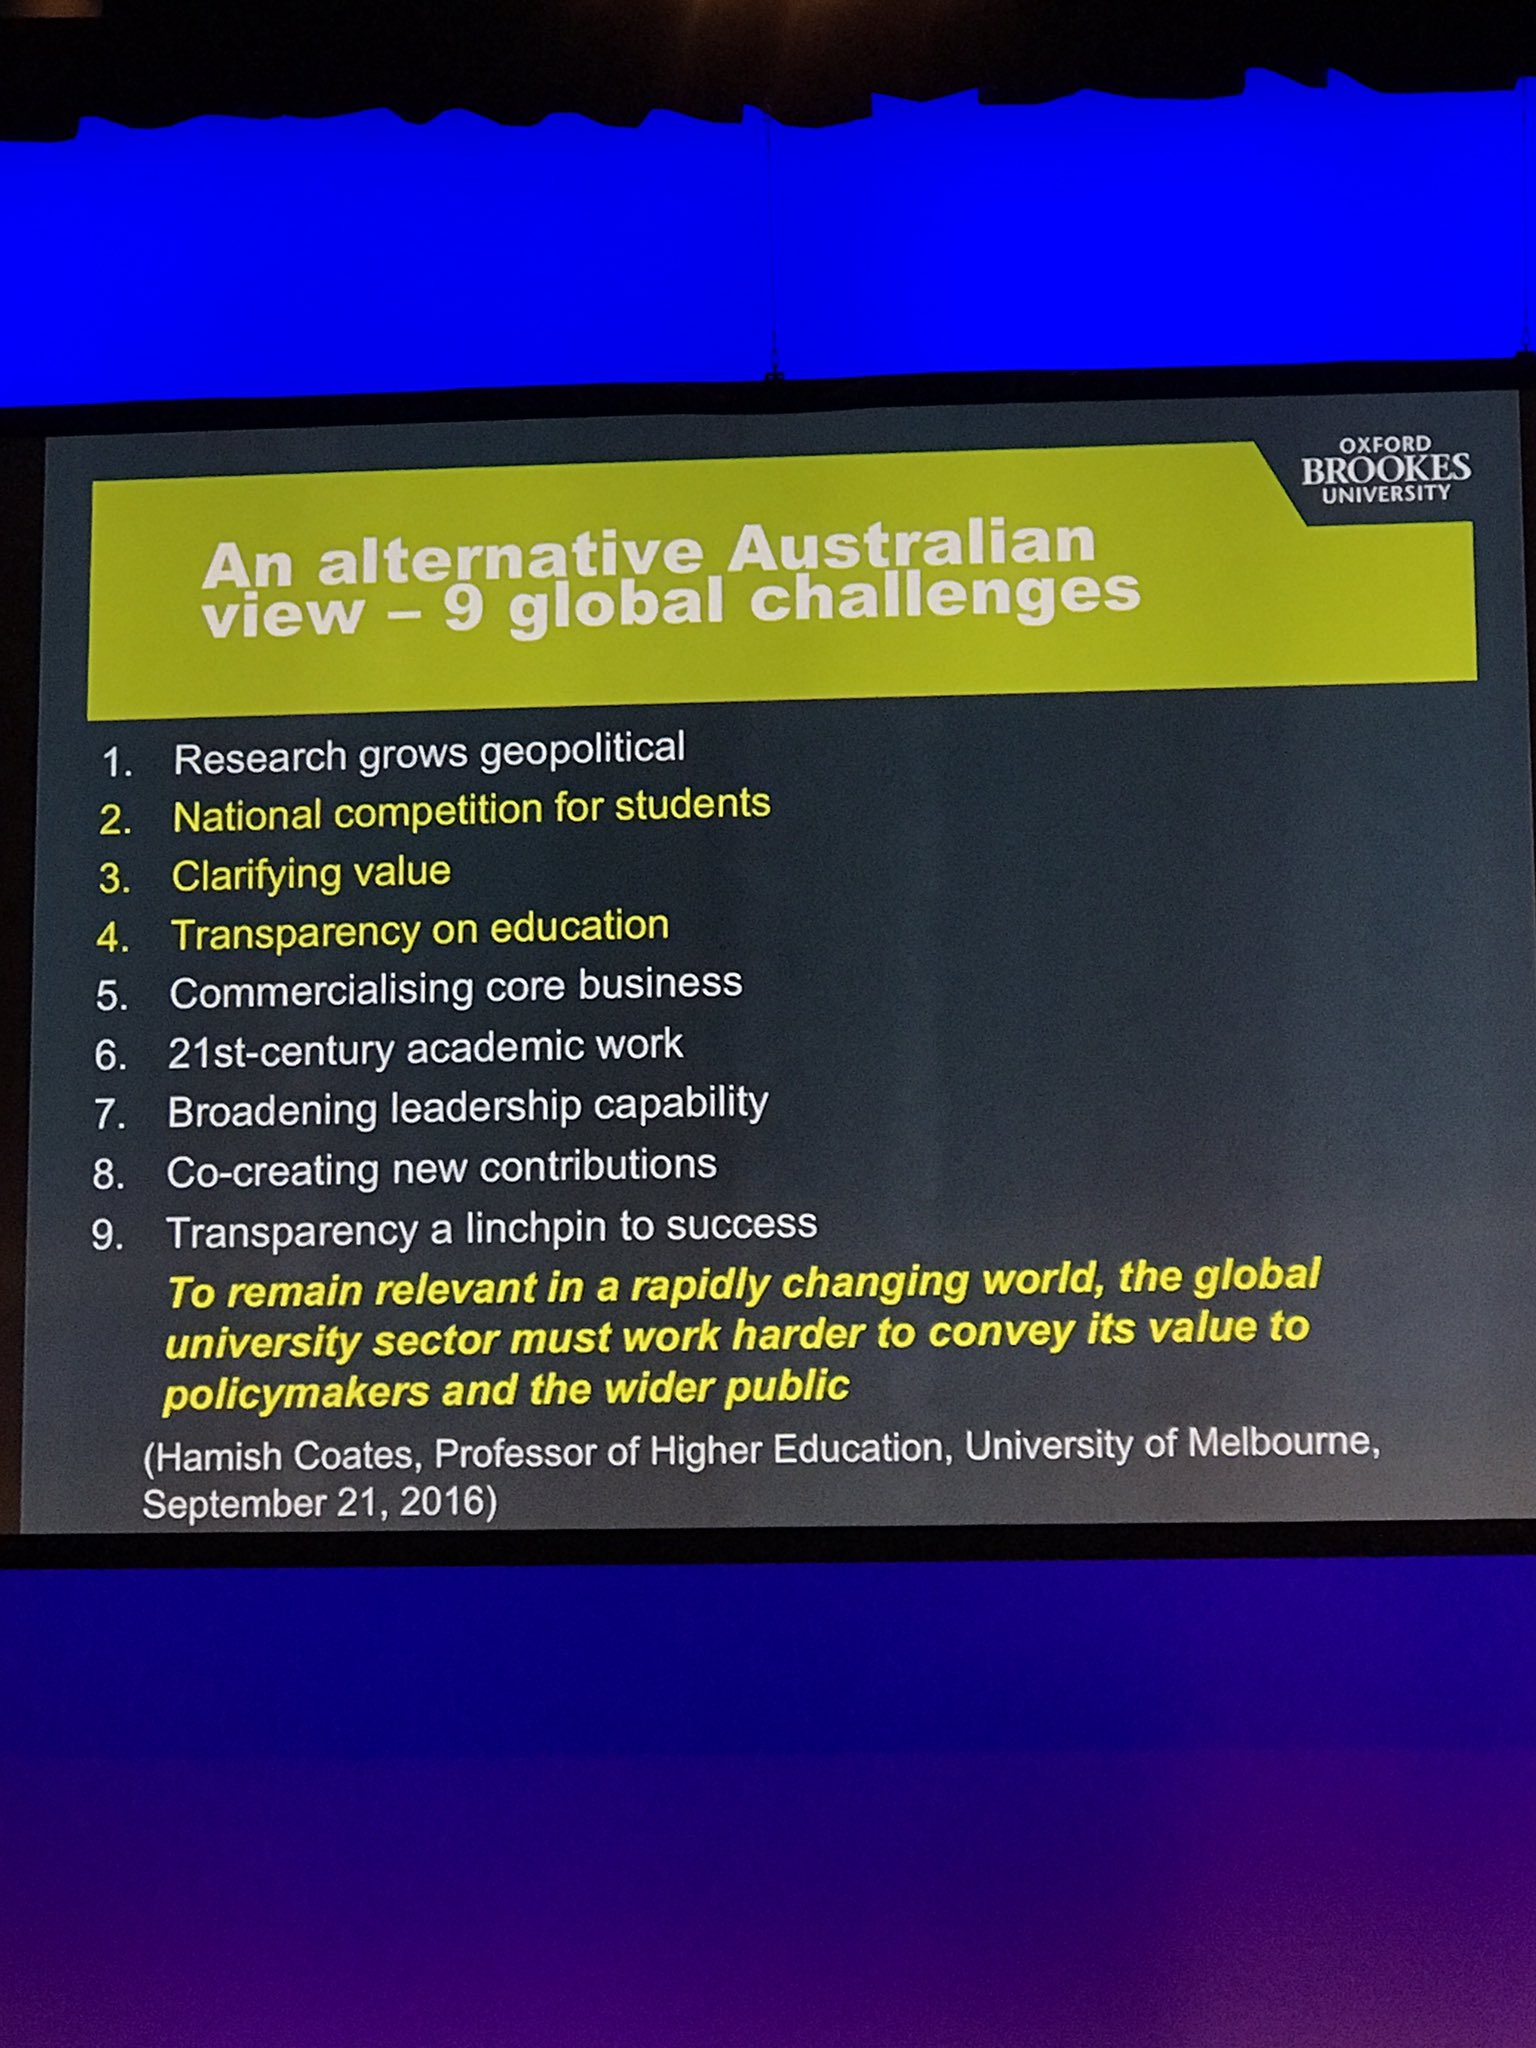 @HamishCoates 9 #HigherEducation Global Challenges from Australia Presented by KeynoteChrisRust #HERDSA17 https://t.co/VPVCD0E93m